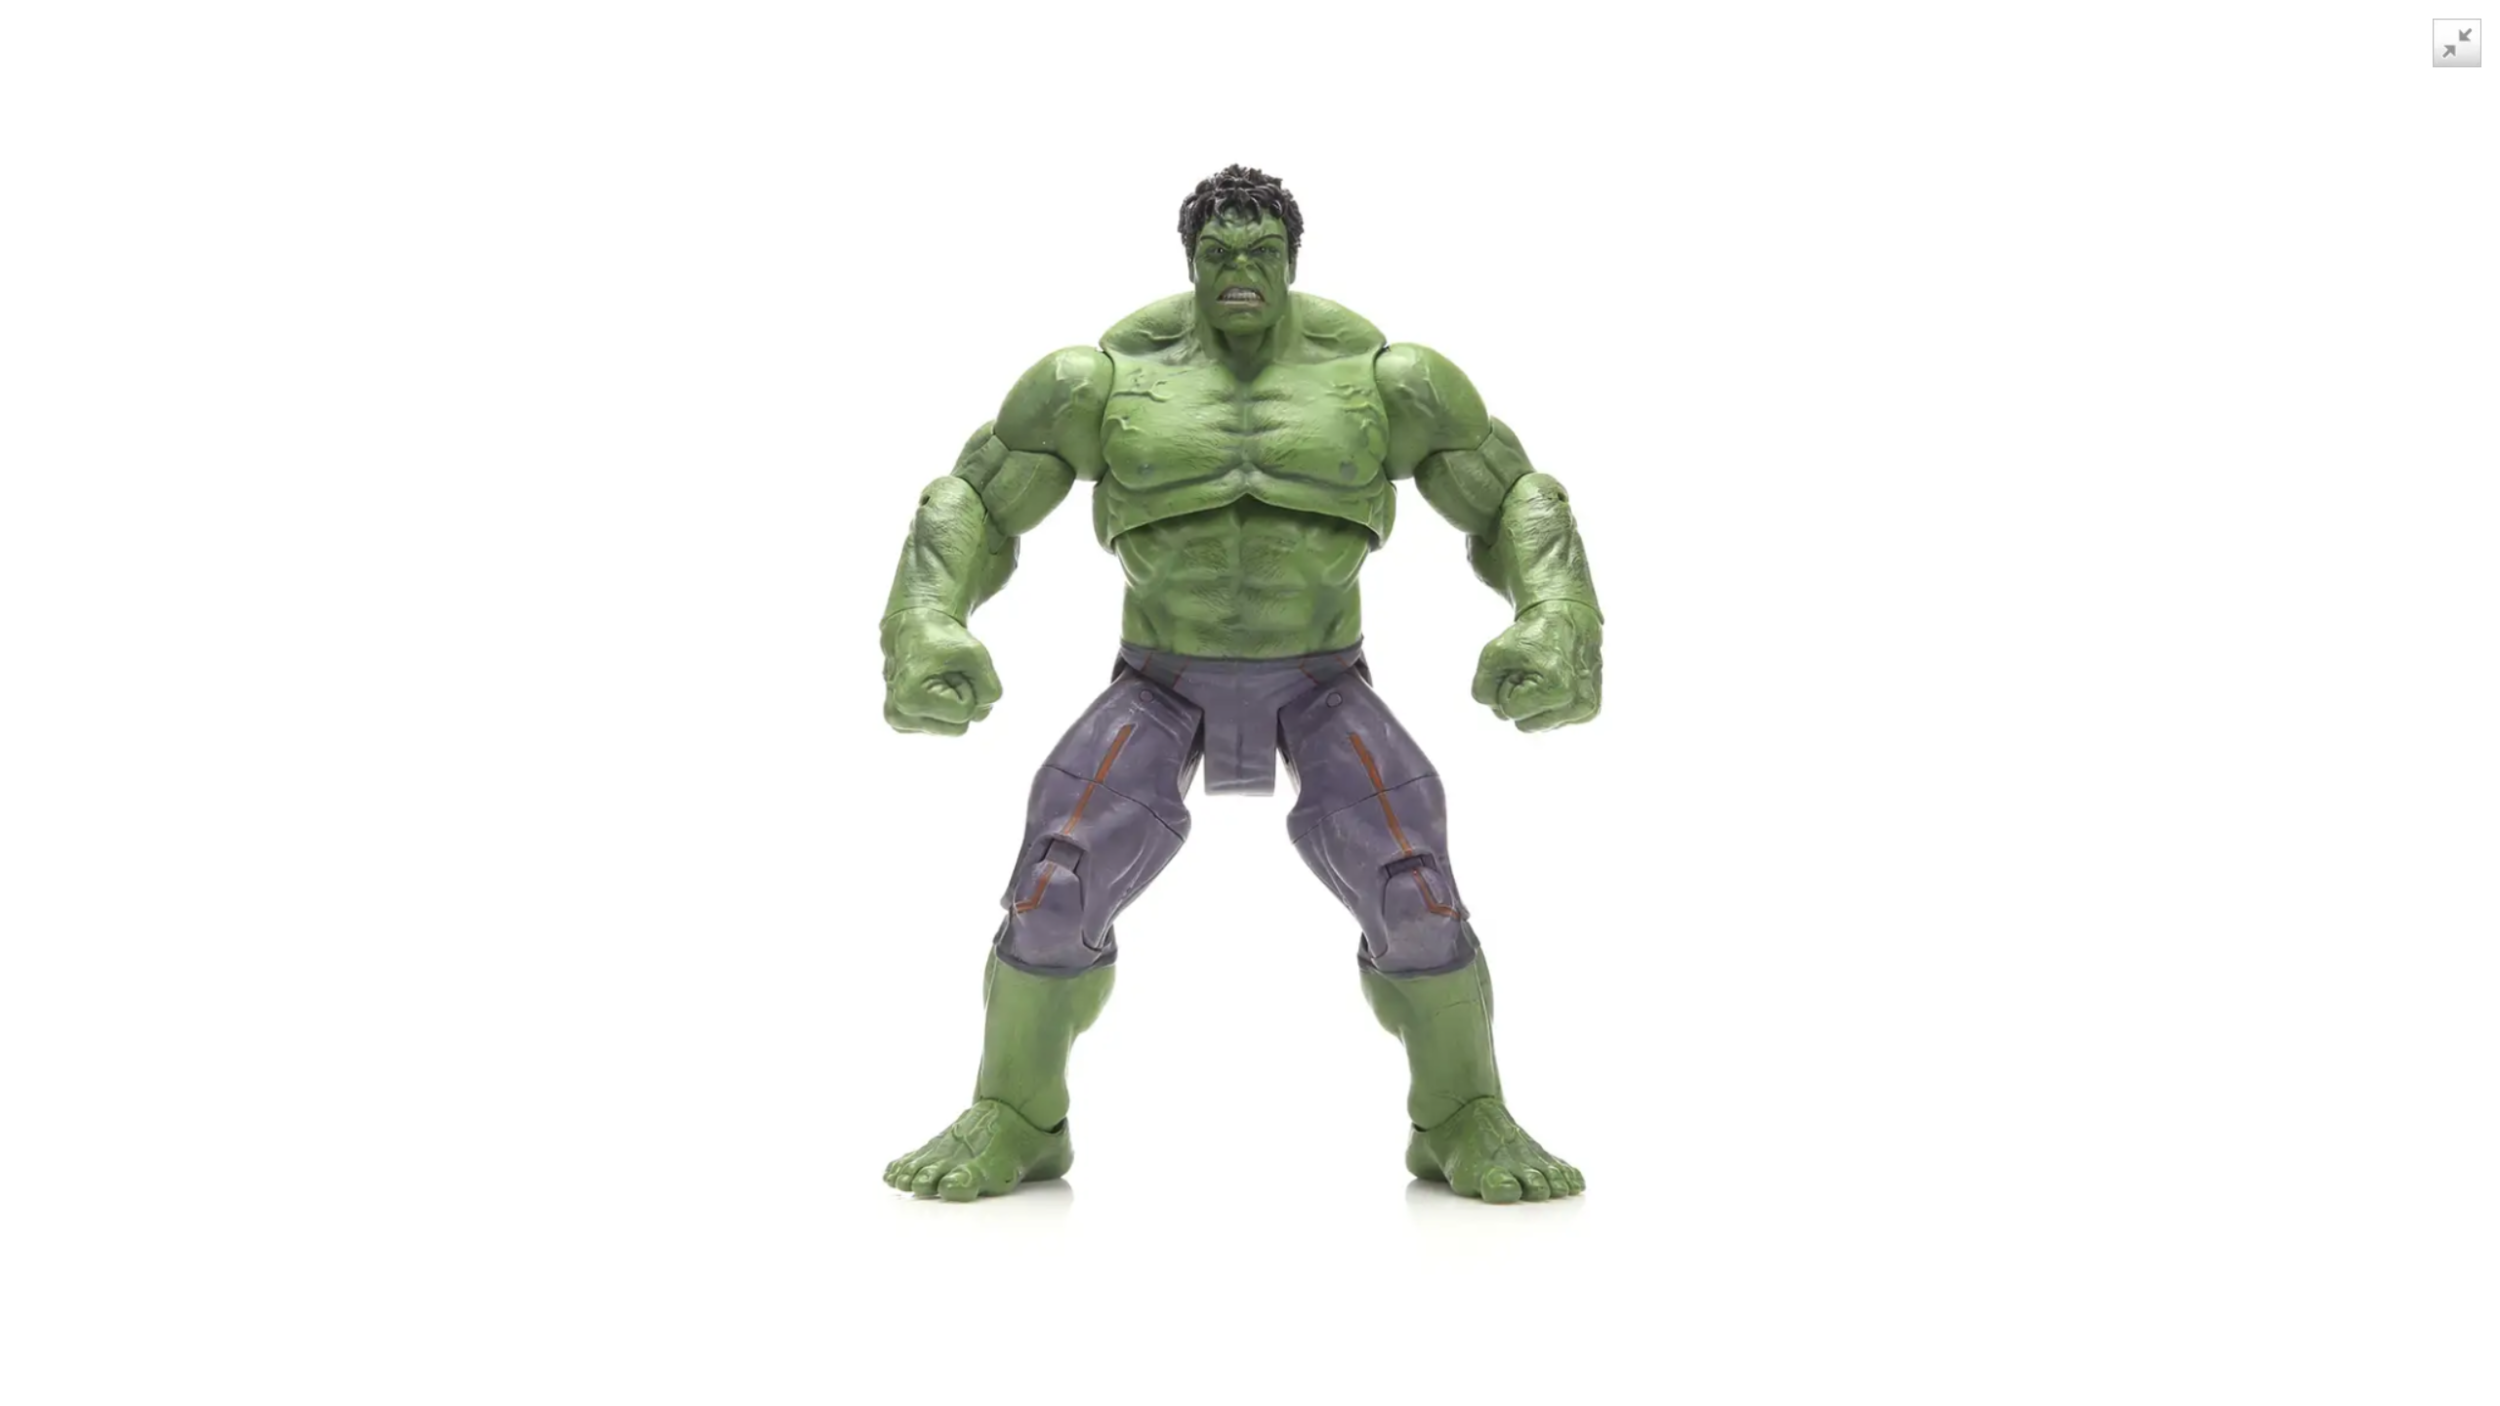 360 Photography of The Hulk Figure